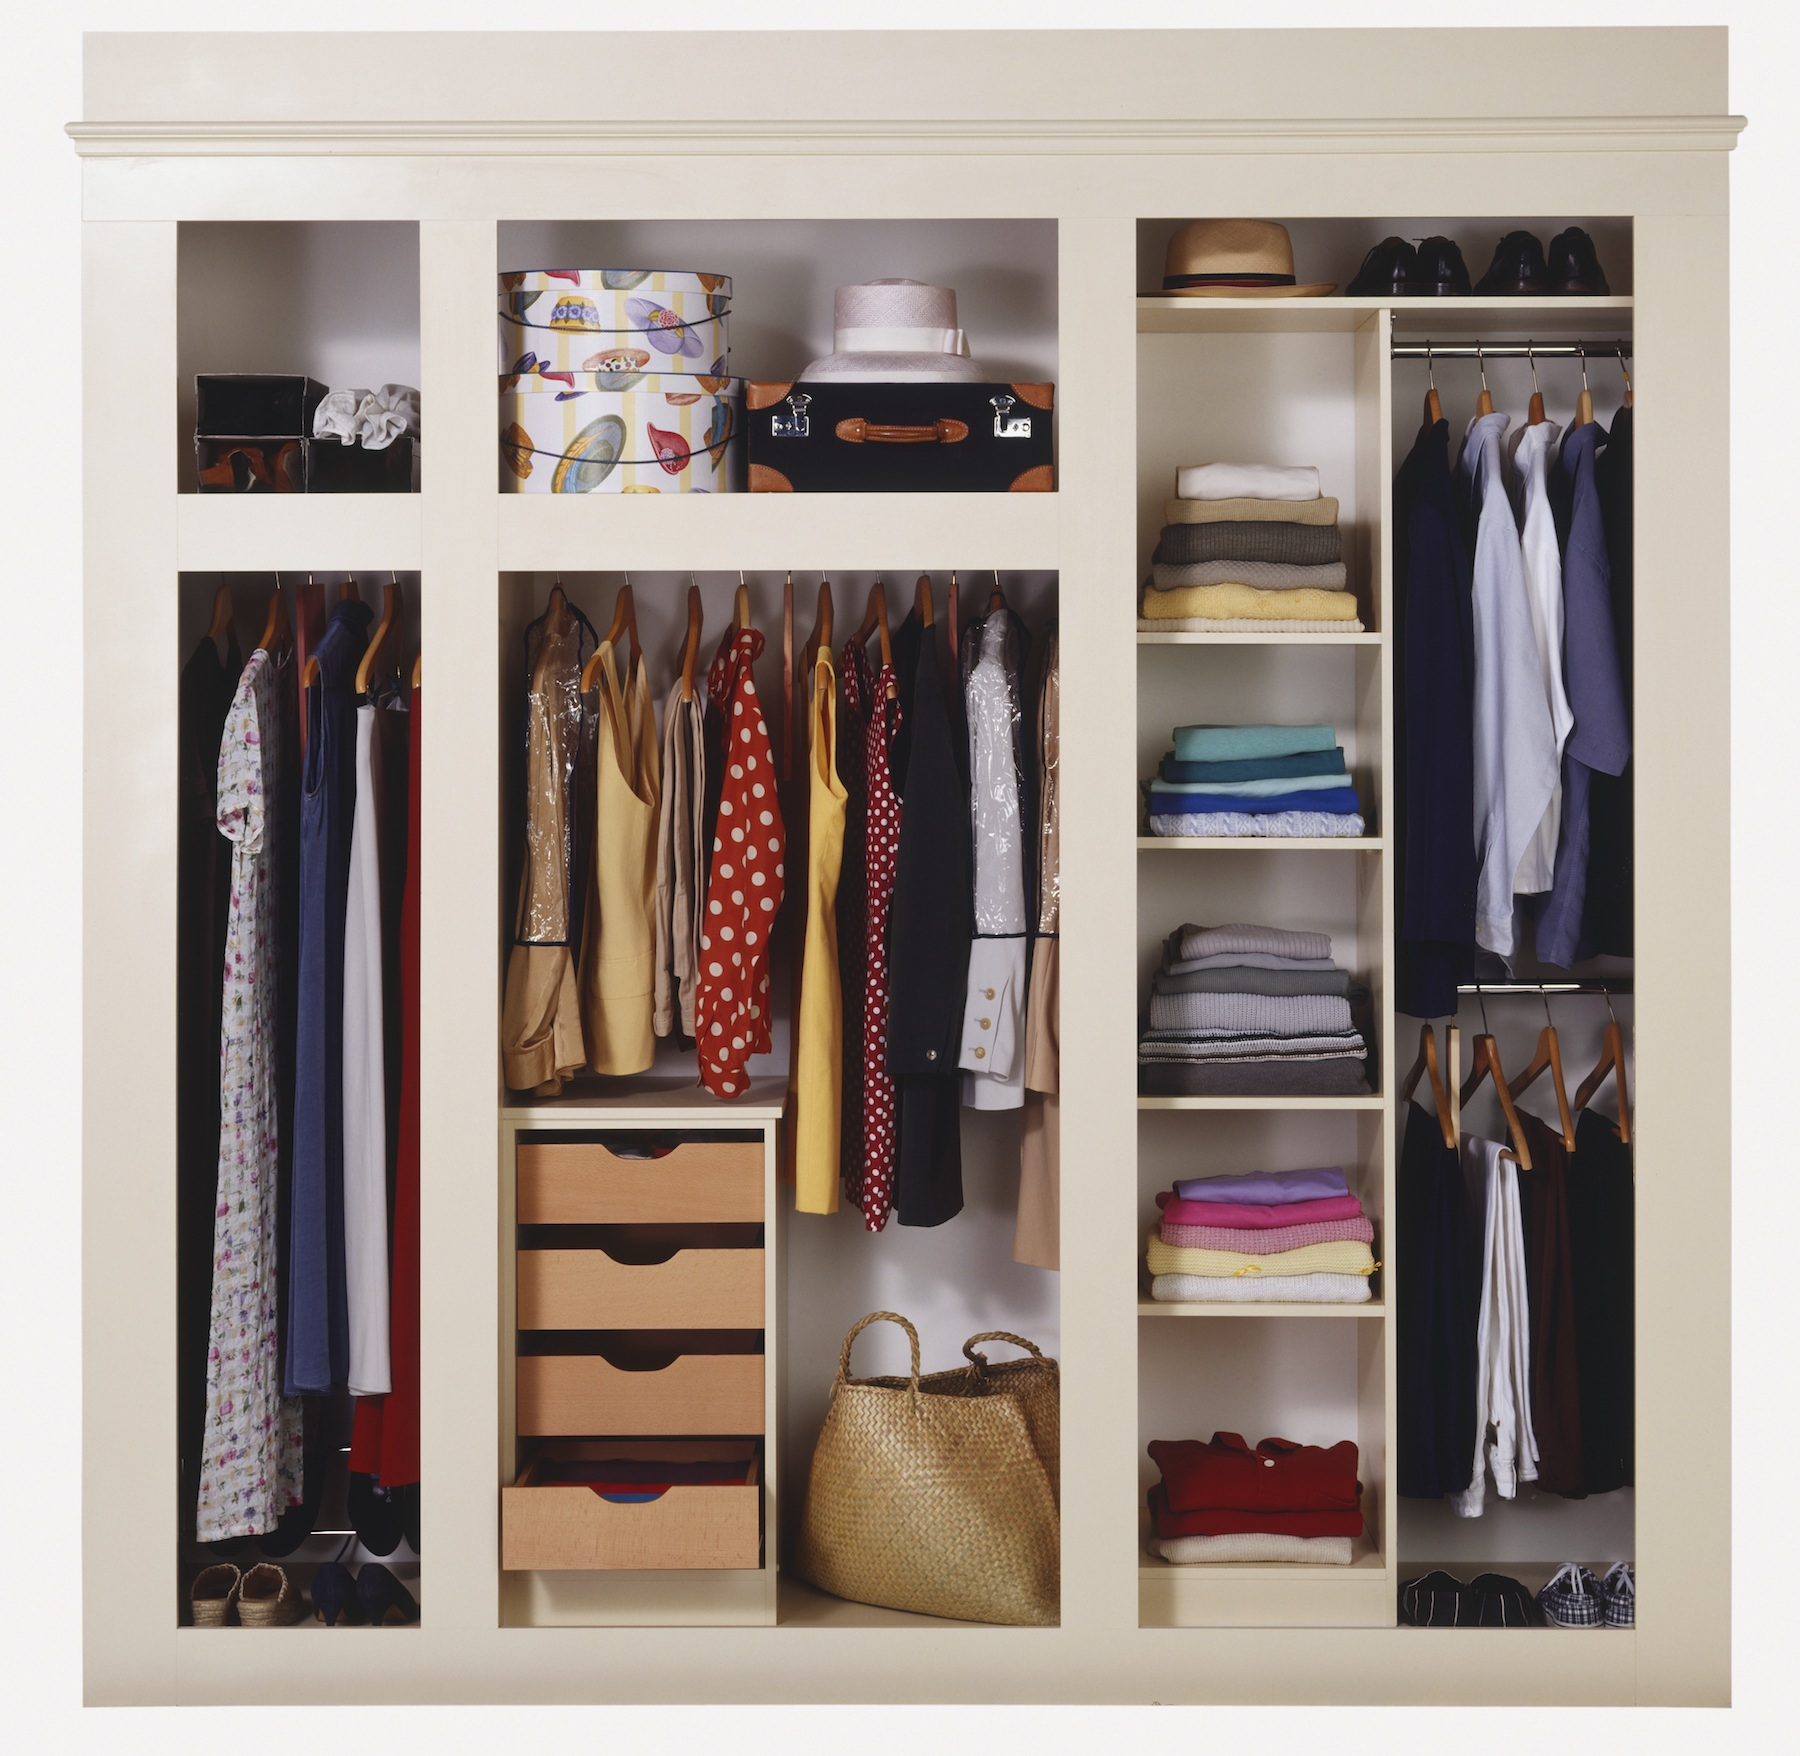 Organized Colorful Closet with shirts, shoes